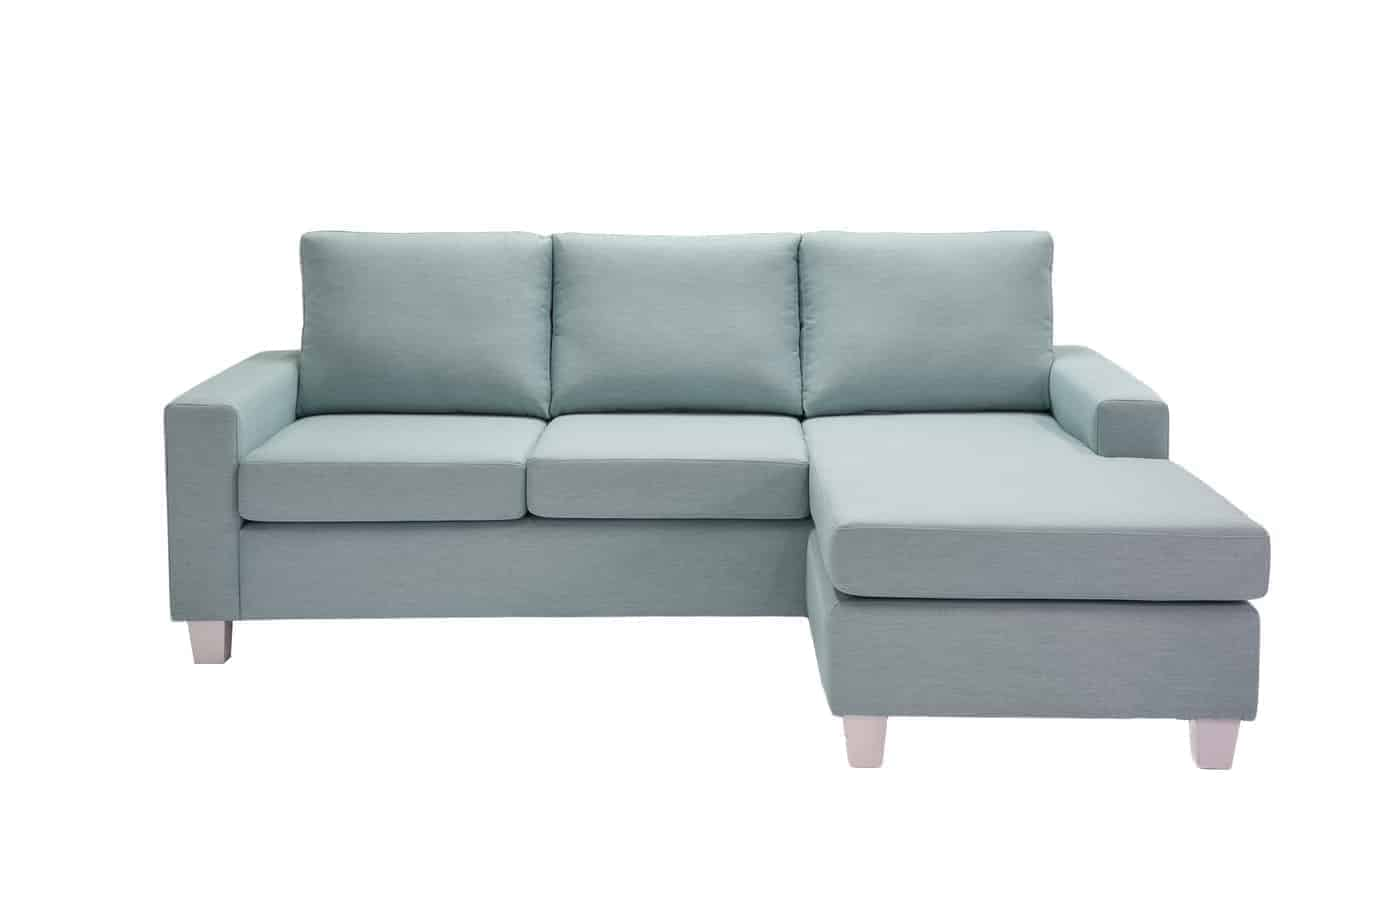 3 Seater Chaise Lounge 1 (4)